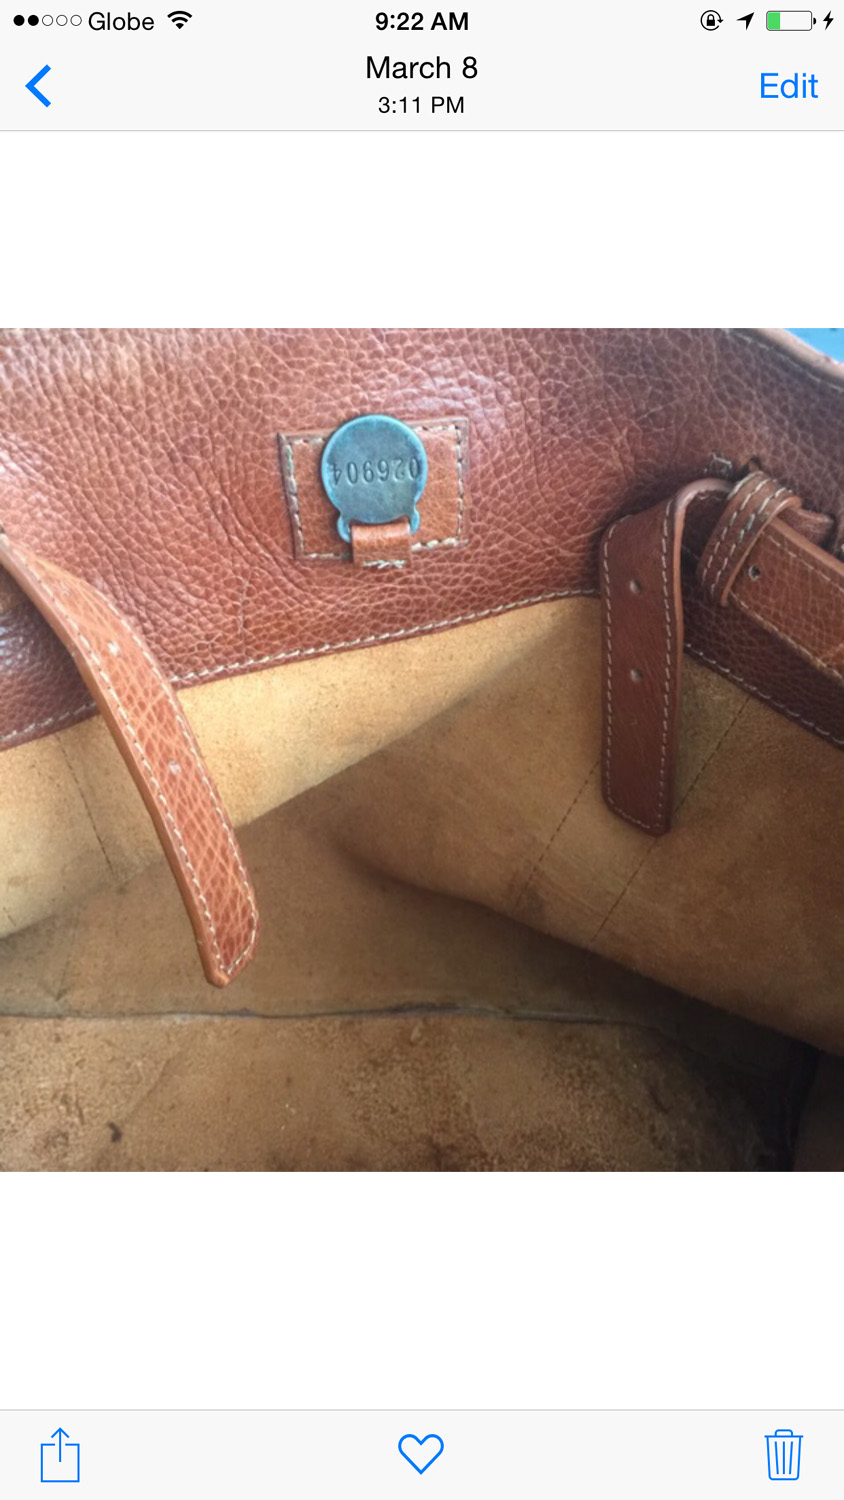 Fake Mulberry serial number, the infamous 026904